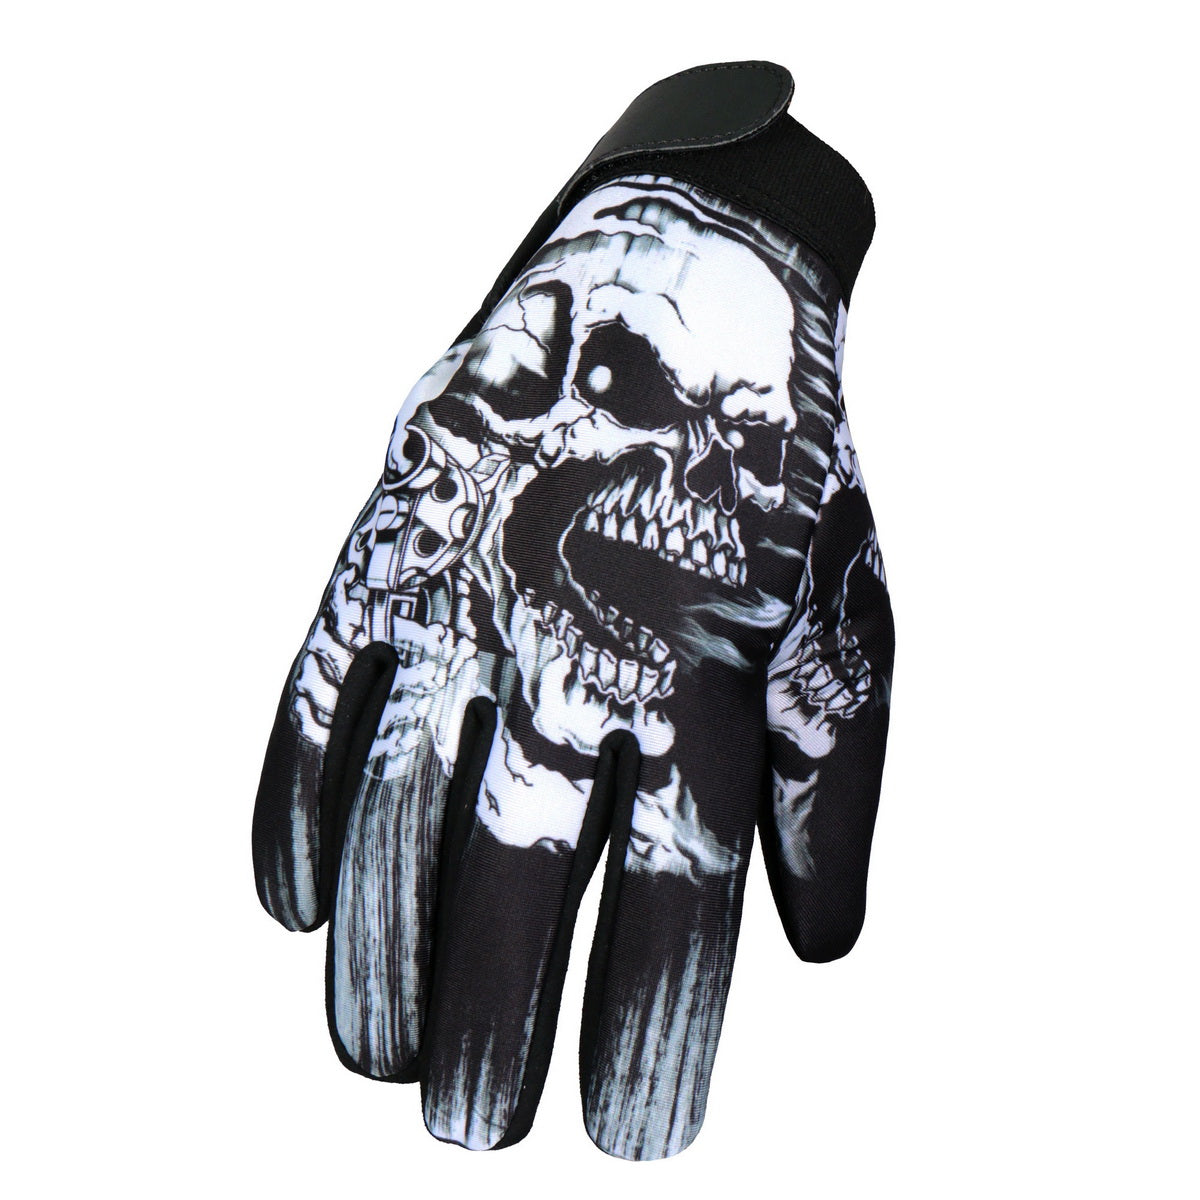 Hot Leathers GVM3004 Assassin Mechanics Glove